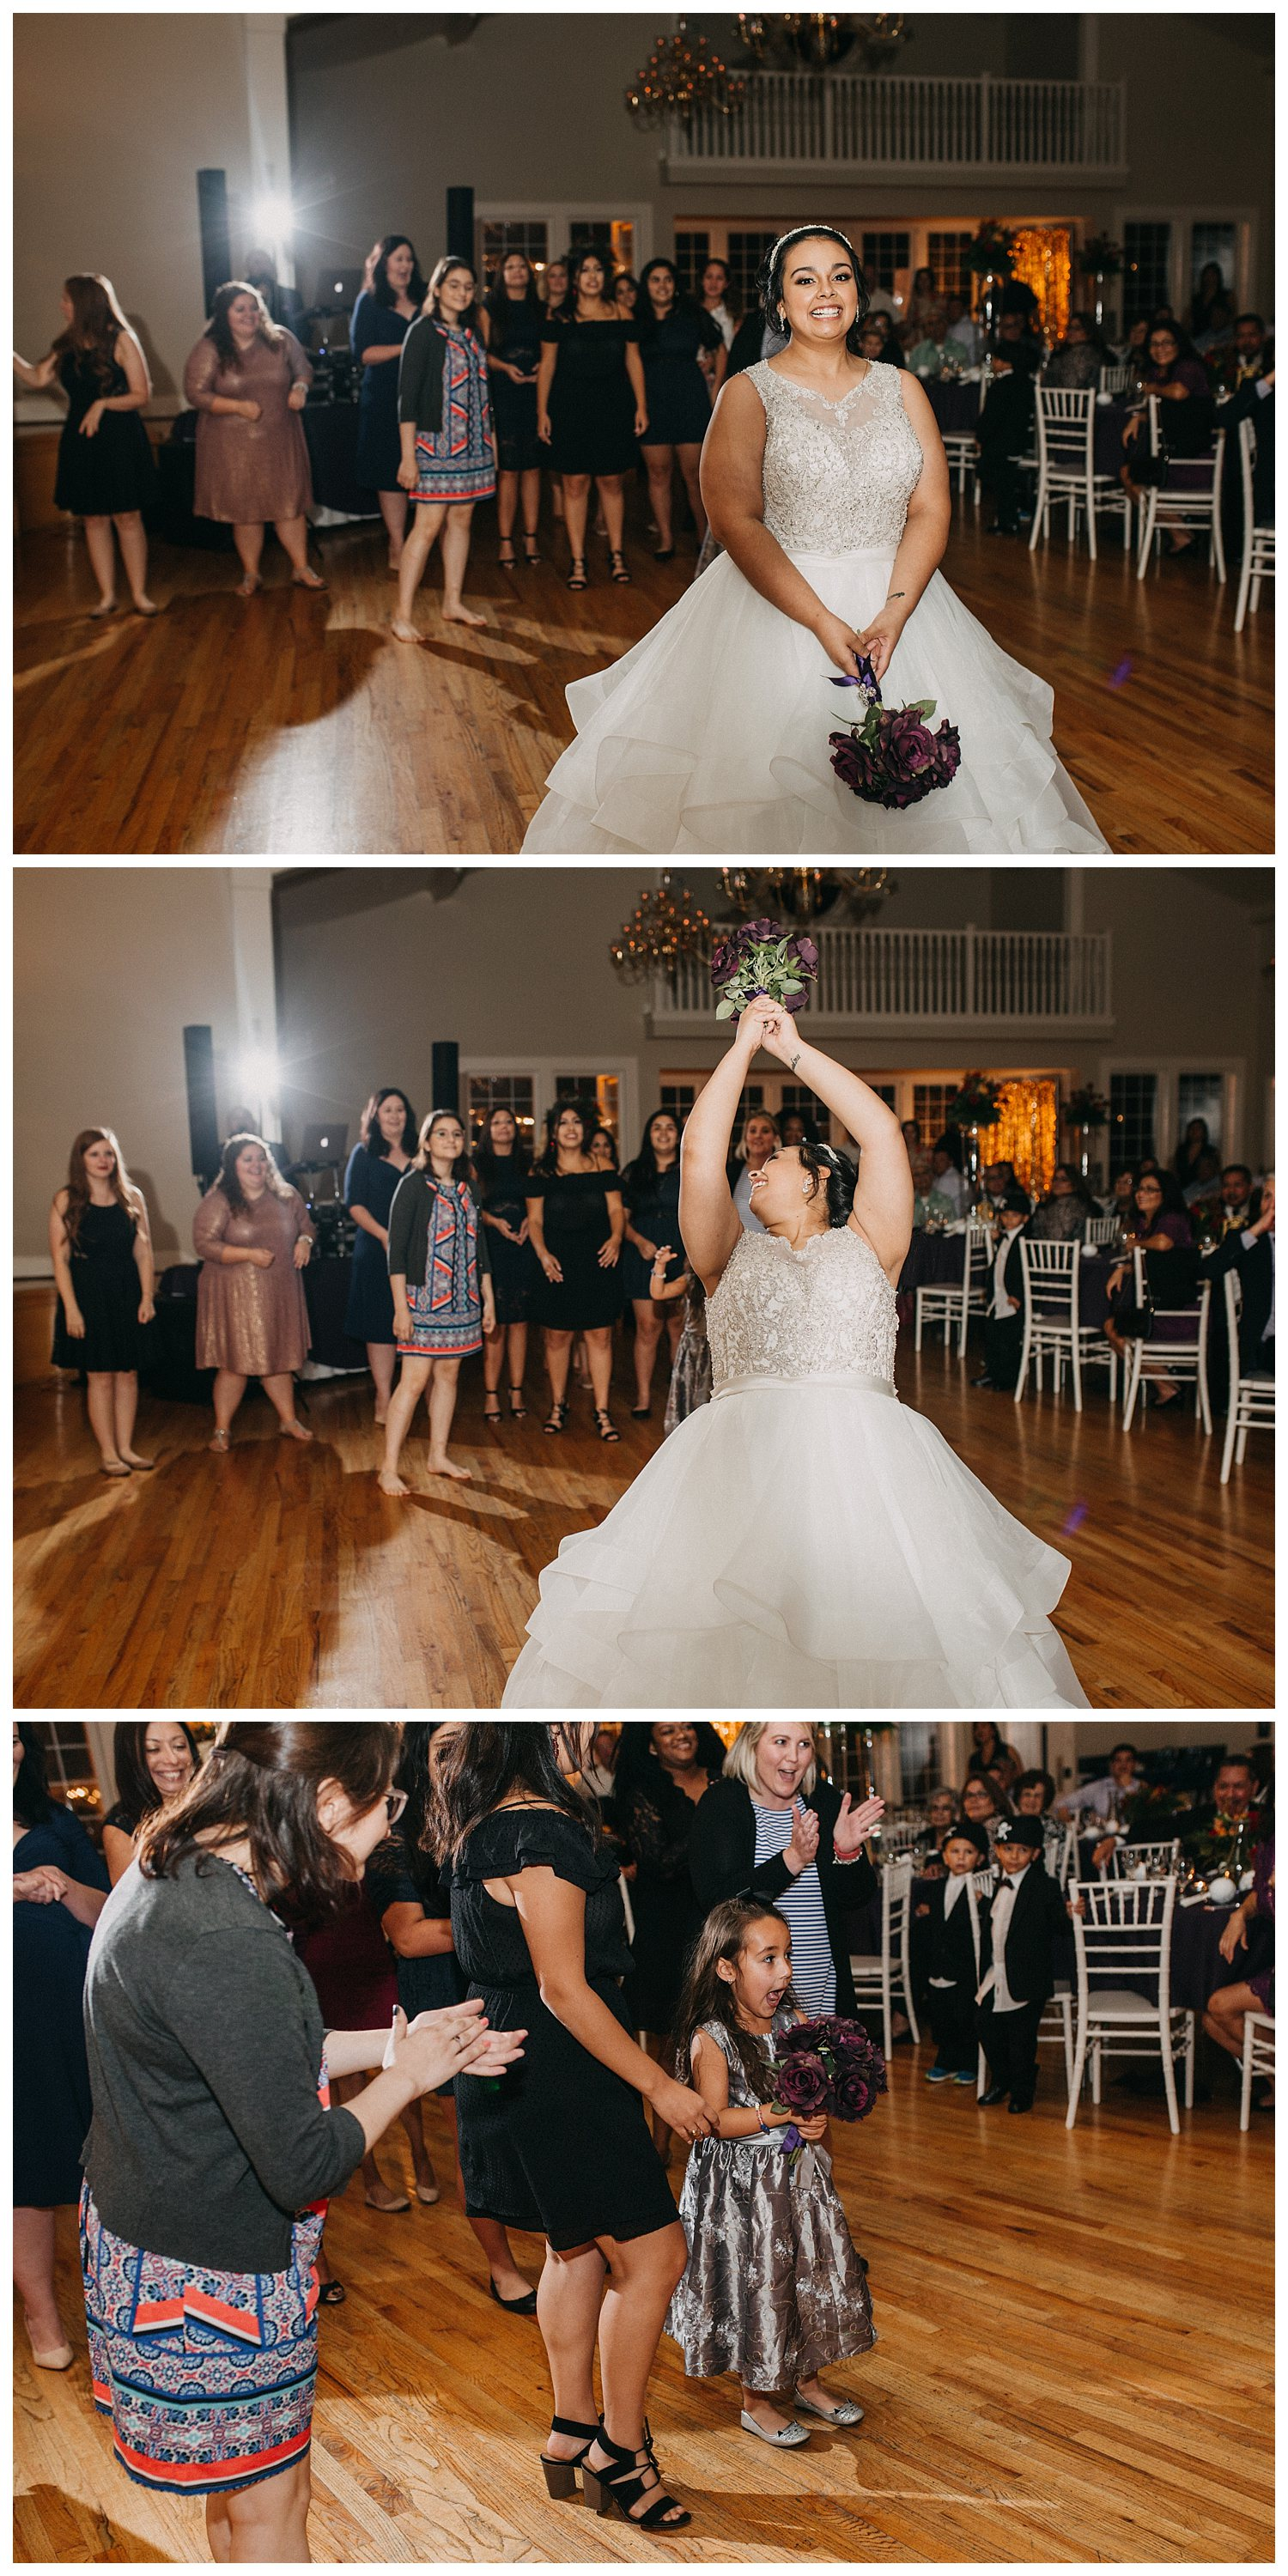 Kelsey_Diane_Photography_Hawthorne_House_Parkville_Kansas_City_Wedding_Veronica_Pat_0078.jpg